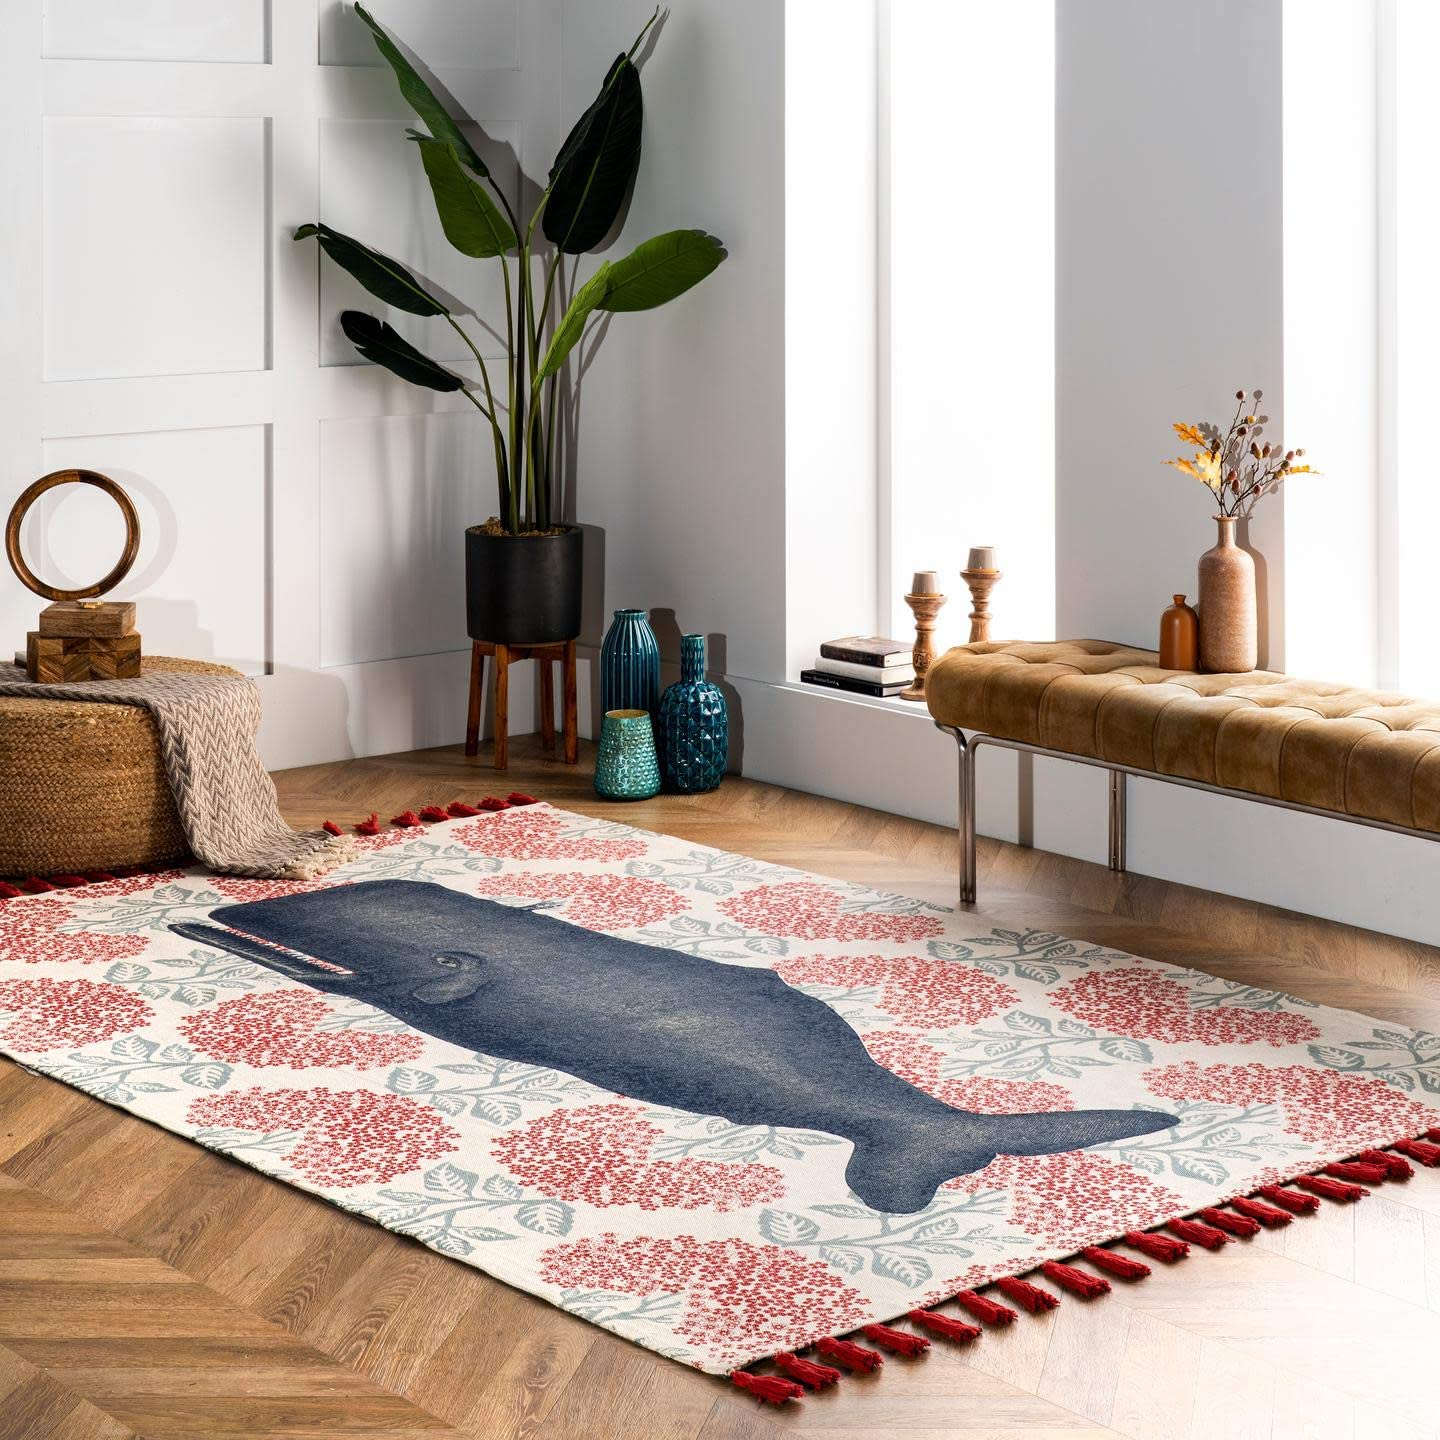 Best living room rug: nuLOOM Thomas Paul Printed Flatweave Cotton Fabled Whale Area Rug